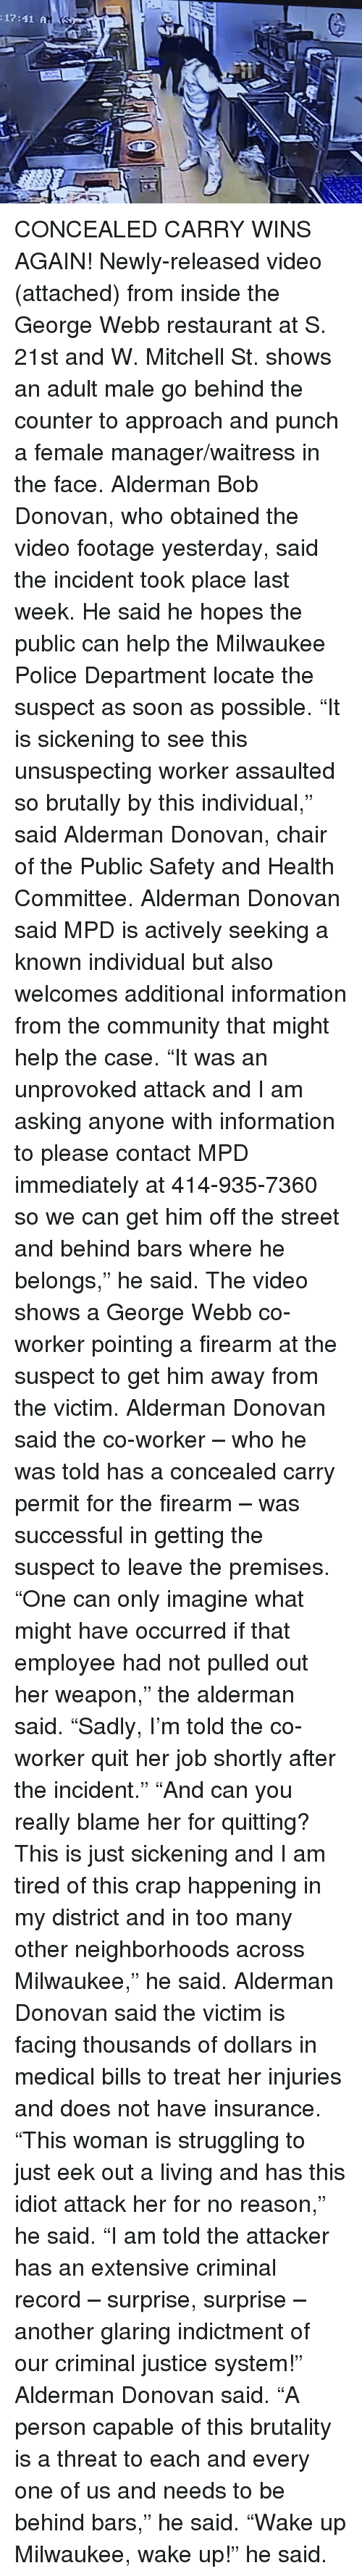 "Community, Police, and Soon...: :17:41 A CONCEALED CARRY WINS AGAIN!  Newly-released video (attached) from inside the George Webb restaurant at S. 21st and W. Mitchell St. shows an adult male go behind the counter to approach and punch a female manager/waitress in the face.  Alderman Bob Donovan, who obtained the video footage yesterday, said the incident took place last week. He said he hopes the public can help the Milwaukee Police Department locate the suspect as soon as possible.  ""It is sickening to see this unsuspecting worker assaulted so brutally by this individual,"" said Alderman Donovan, chair of the Public Safety and Health Committee.  Alderman Donovan said MPD is actively seeking a known individual but also welcomes additional information from the community that might help the case.  ""It was an unprovoked attack and I am asking anyone with information to please contact MPD immediately at 414-935-7360 so we can get him off the street and behind bars where he belongs,"" he said.  The video shows a George Webb co-worker pointing a firearm at the suspect to get him away from the victim. Alderman Donovan said the co-worker – who he was told has a concealed carry permit for the firearm – was successful in getting the suspect to leave the premises.  ""One can only imagine what might have occurred if that employee had not pulled out her weapon,"" the alderman said. ""Sadly, I'm told the co-worker quit her job shortly after the incident.""  ""And can you really blame her for quitting? This is just sickening and I am tired of this crap happening in my district and in too many other neighborhoods across Milwaukee,"" he said.  Alderman Donovan said the victim is facing thousands of dollars in medical bills to treat her injuries and does not have insurance. ""This woman is struggling to just eek out a living and has this idiot attack her for no reason,"" he said.  ""I am told the attacker has an extensive criminal record – surprise, surprise – another glaring indictment of our criminal justice system!"" Alderman Donovan said.  ""A person capable of this brutality is a threat to each and every one of us and needs to be behind bars,"" he said.  ""Wake up Milwaukee, wake up!"" he said."